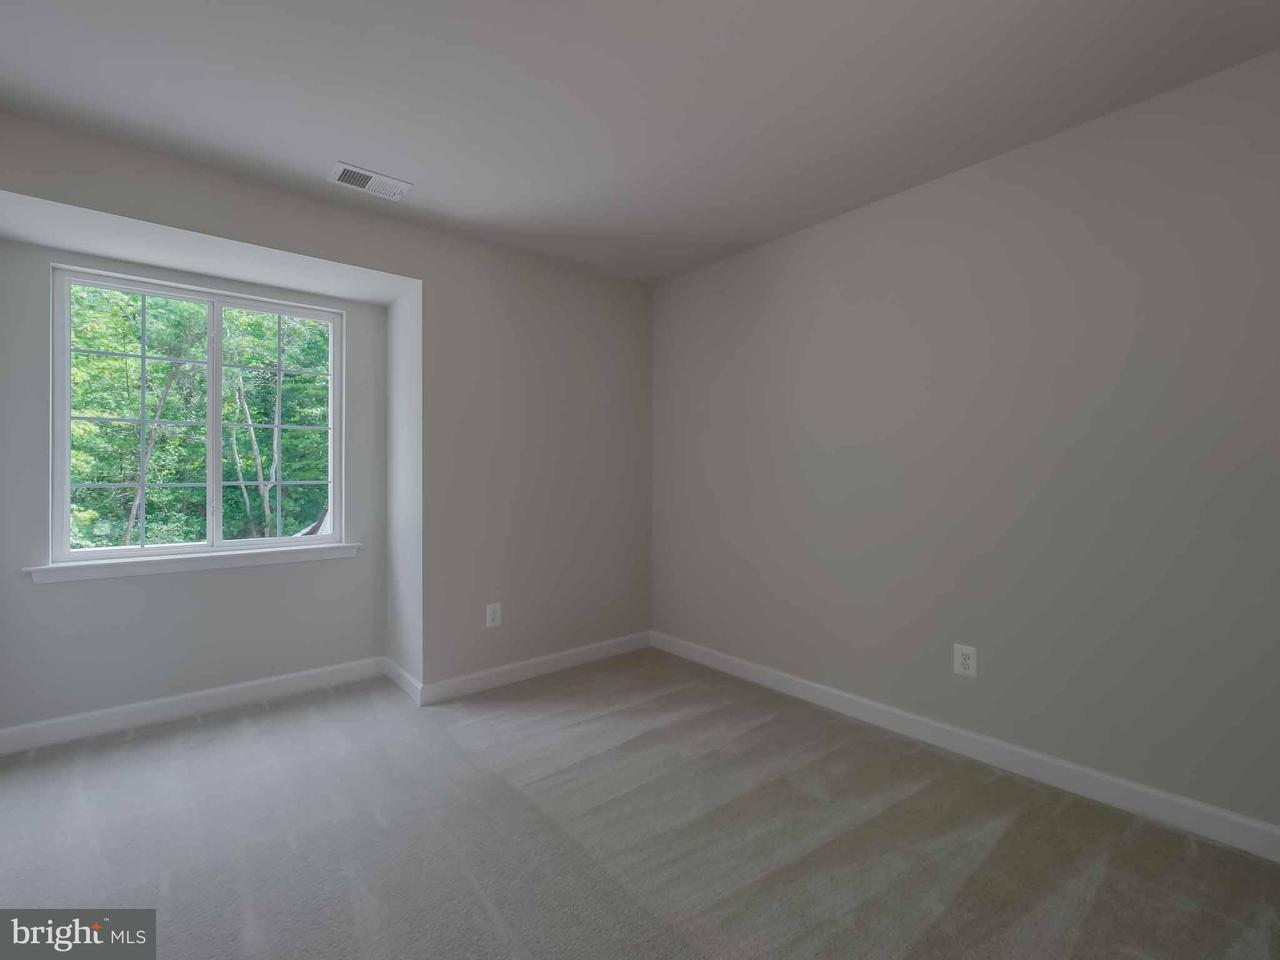 Additional photo for property listing at 19020 NORTH PORTO BELLO Drive 19020 NORTH PORTO BELLO Drive Drayden, 馬里蘭州 20630 美國